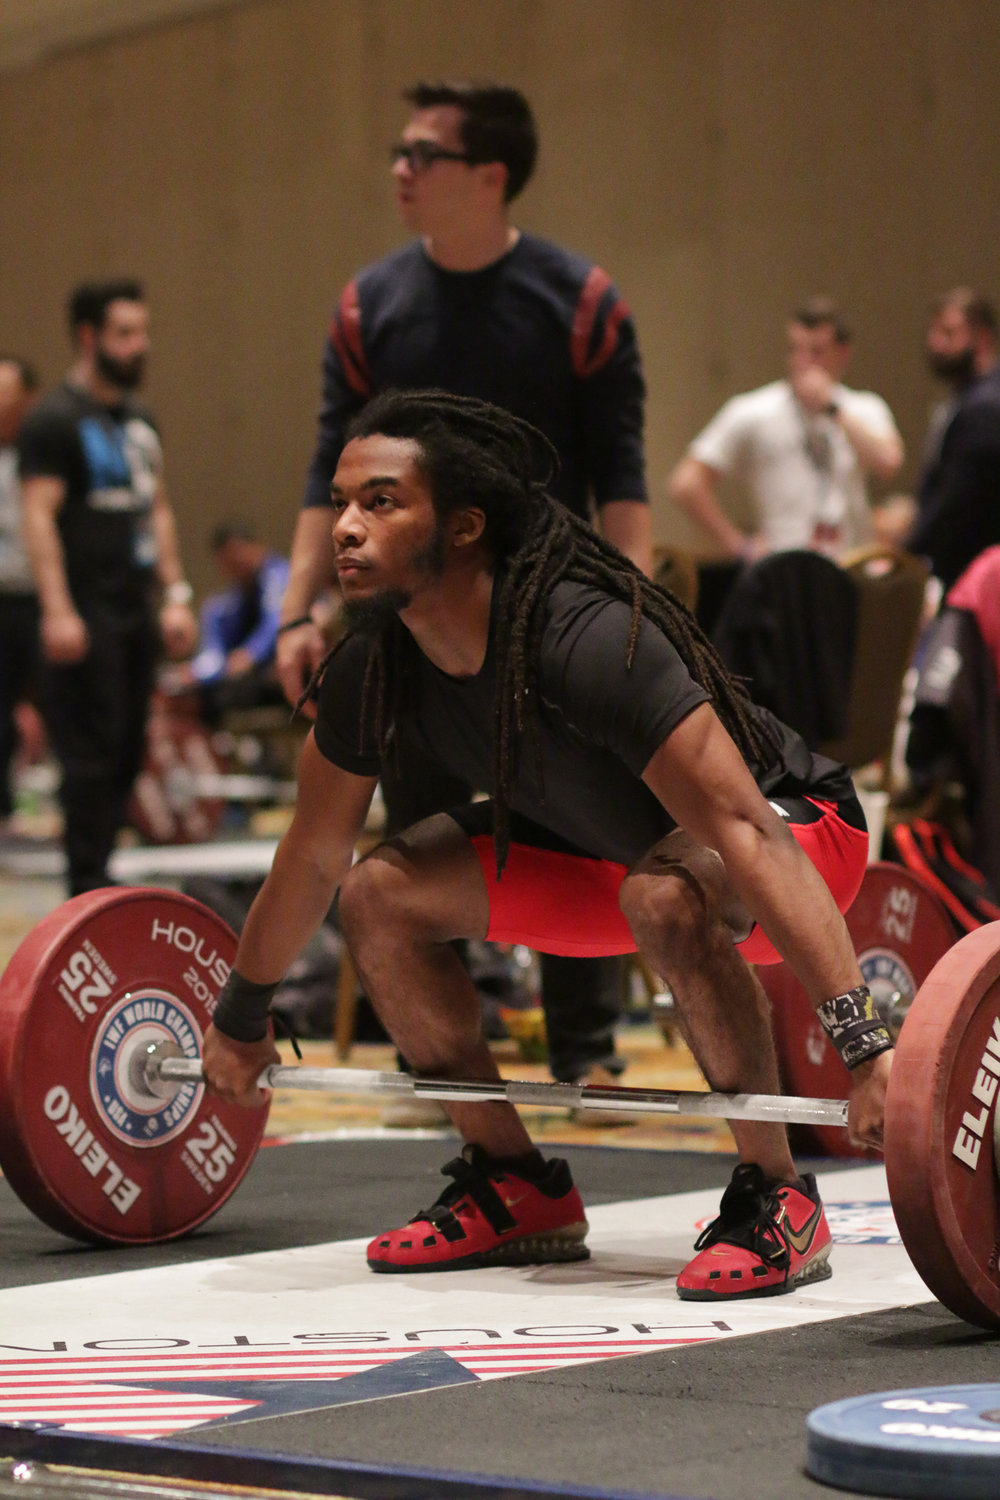 session-a-favorites-american-open-2016-weightlifting-photography (1 of 1)-2.jpg